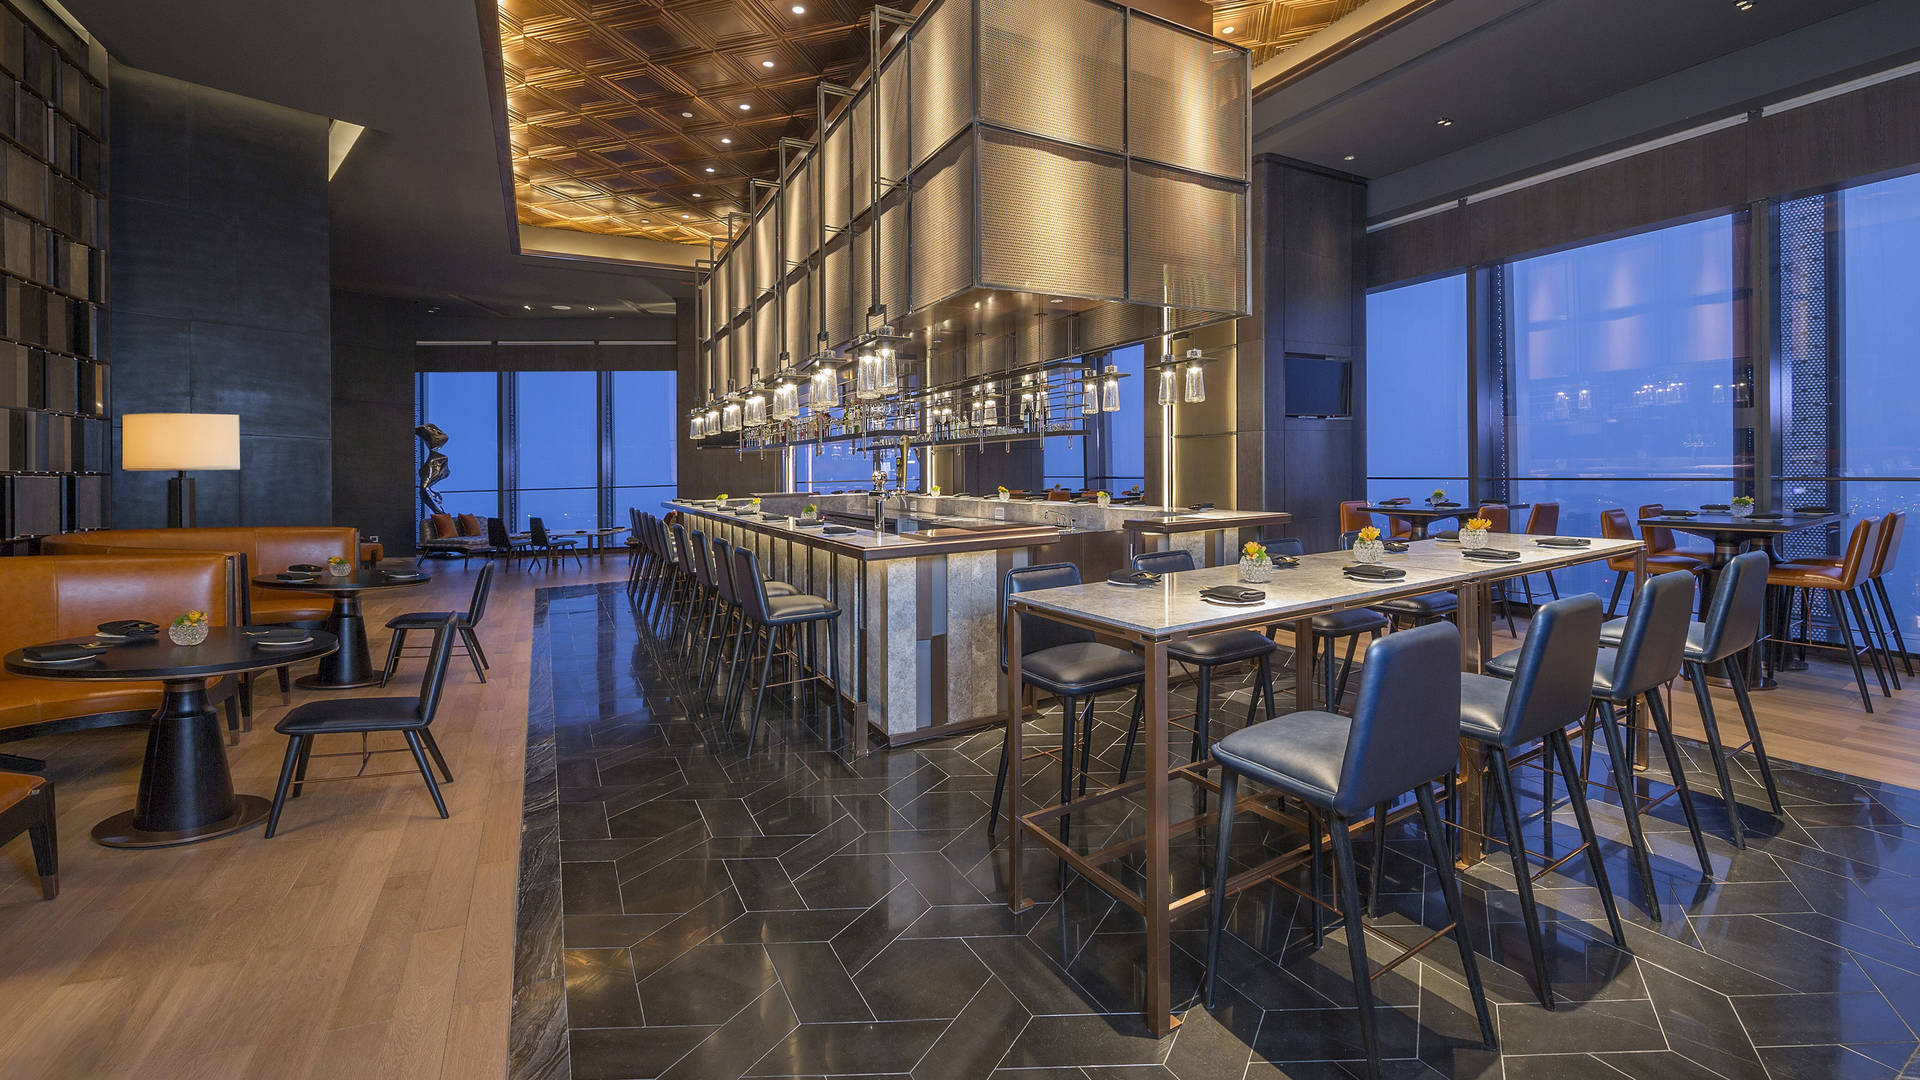 Zhuo Xian Seafood Bar with central bar and views